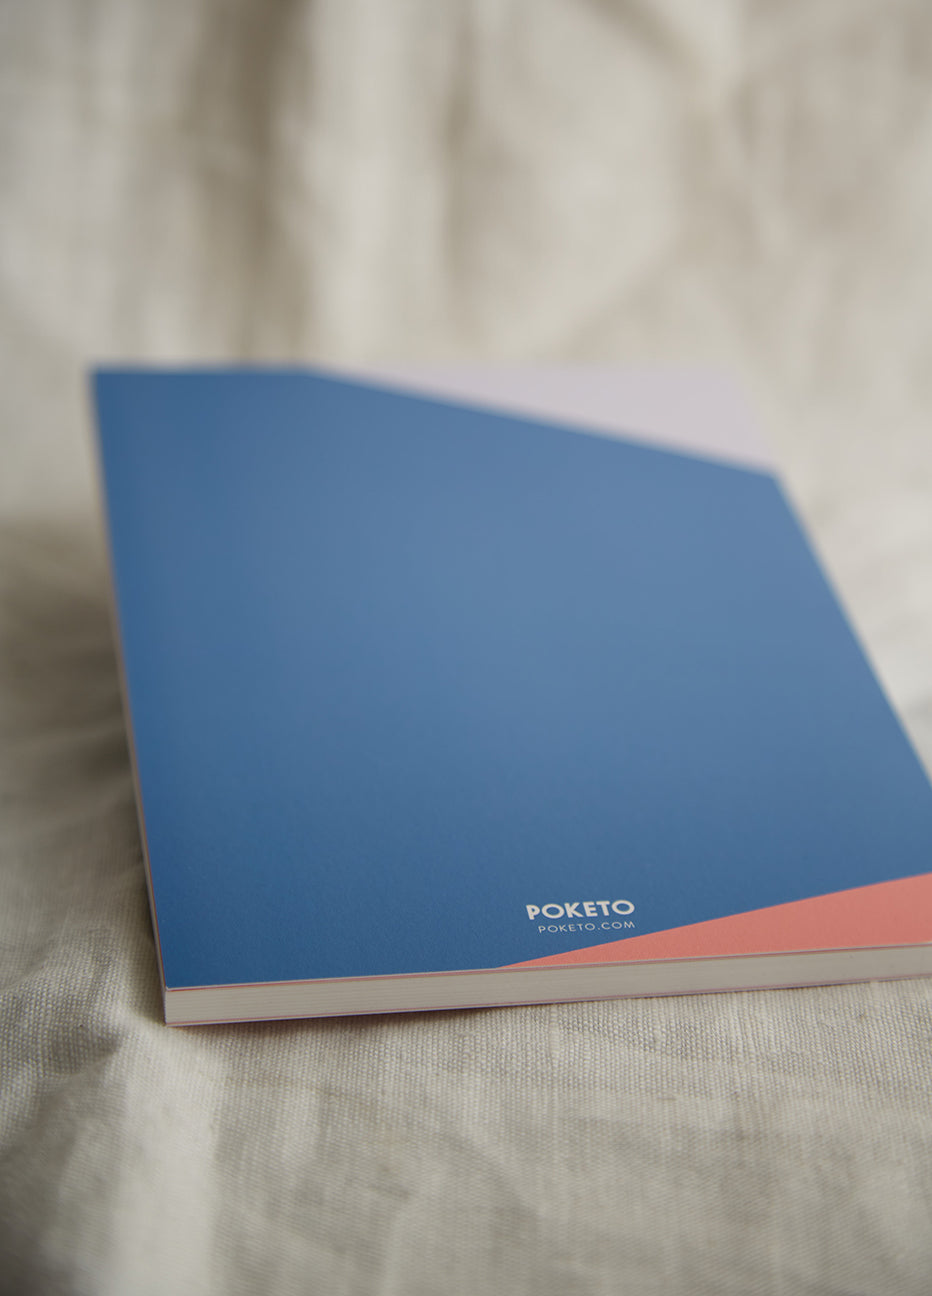 Poketo Notebook